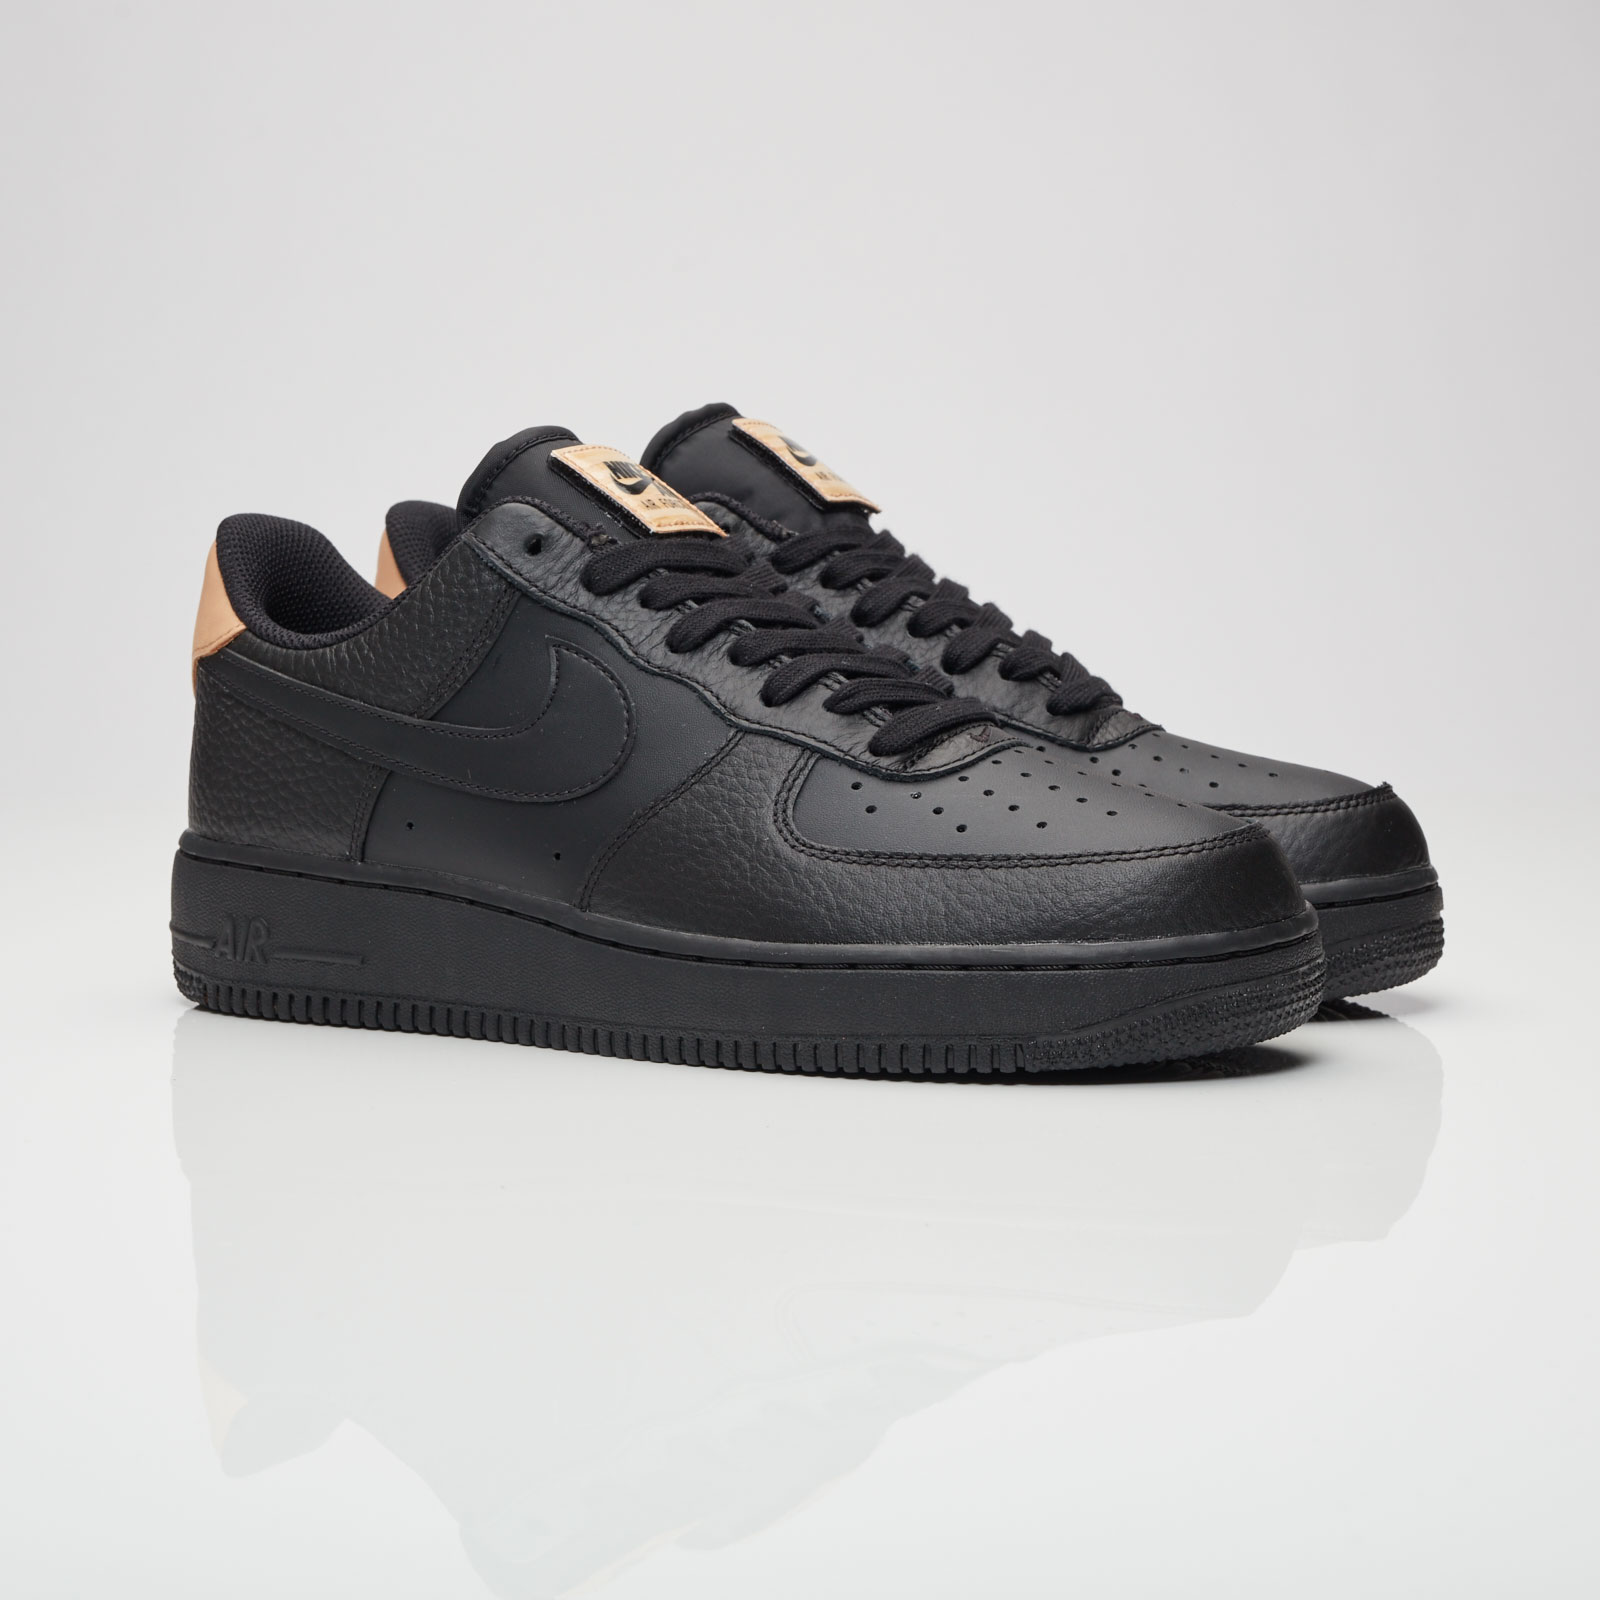 Nike Air Force 1 07 Lv8 718152 016 Sneakersnstuff